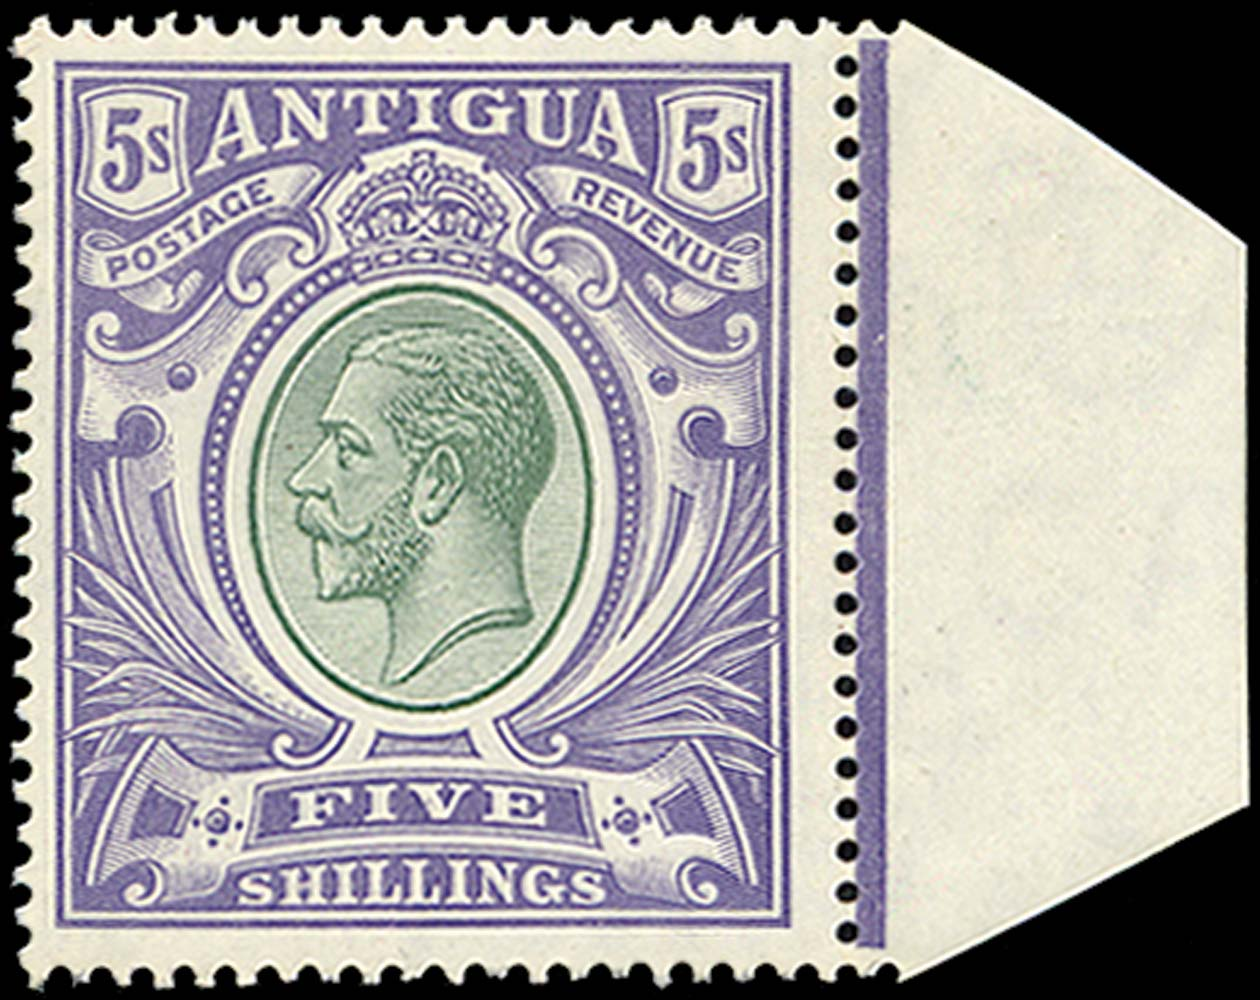 ANTIGUA 1913  SG51 Mint 5s grey-green and violet unmounted